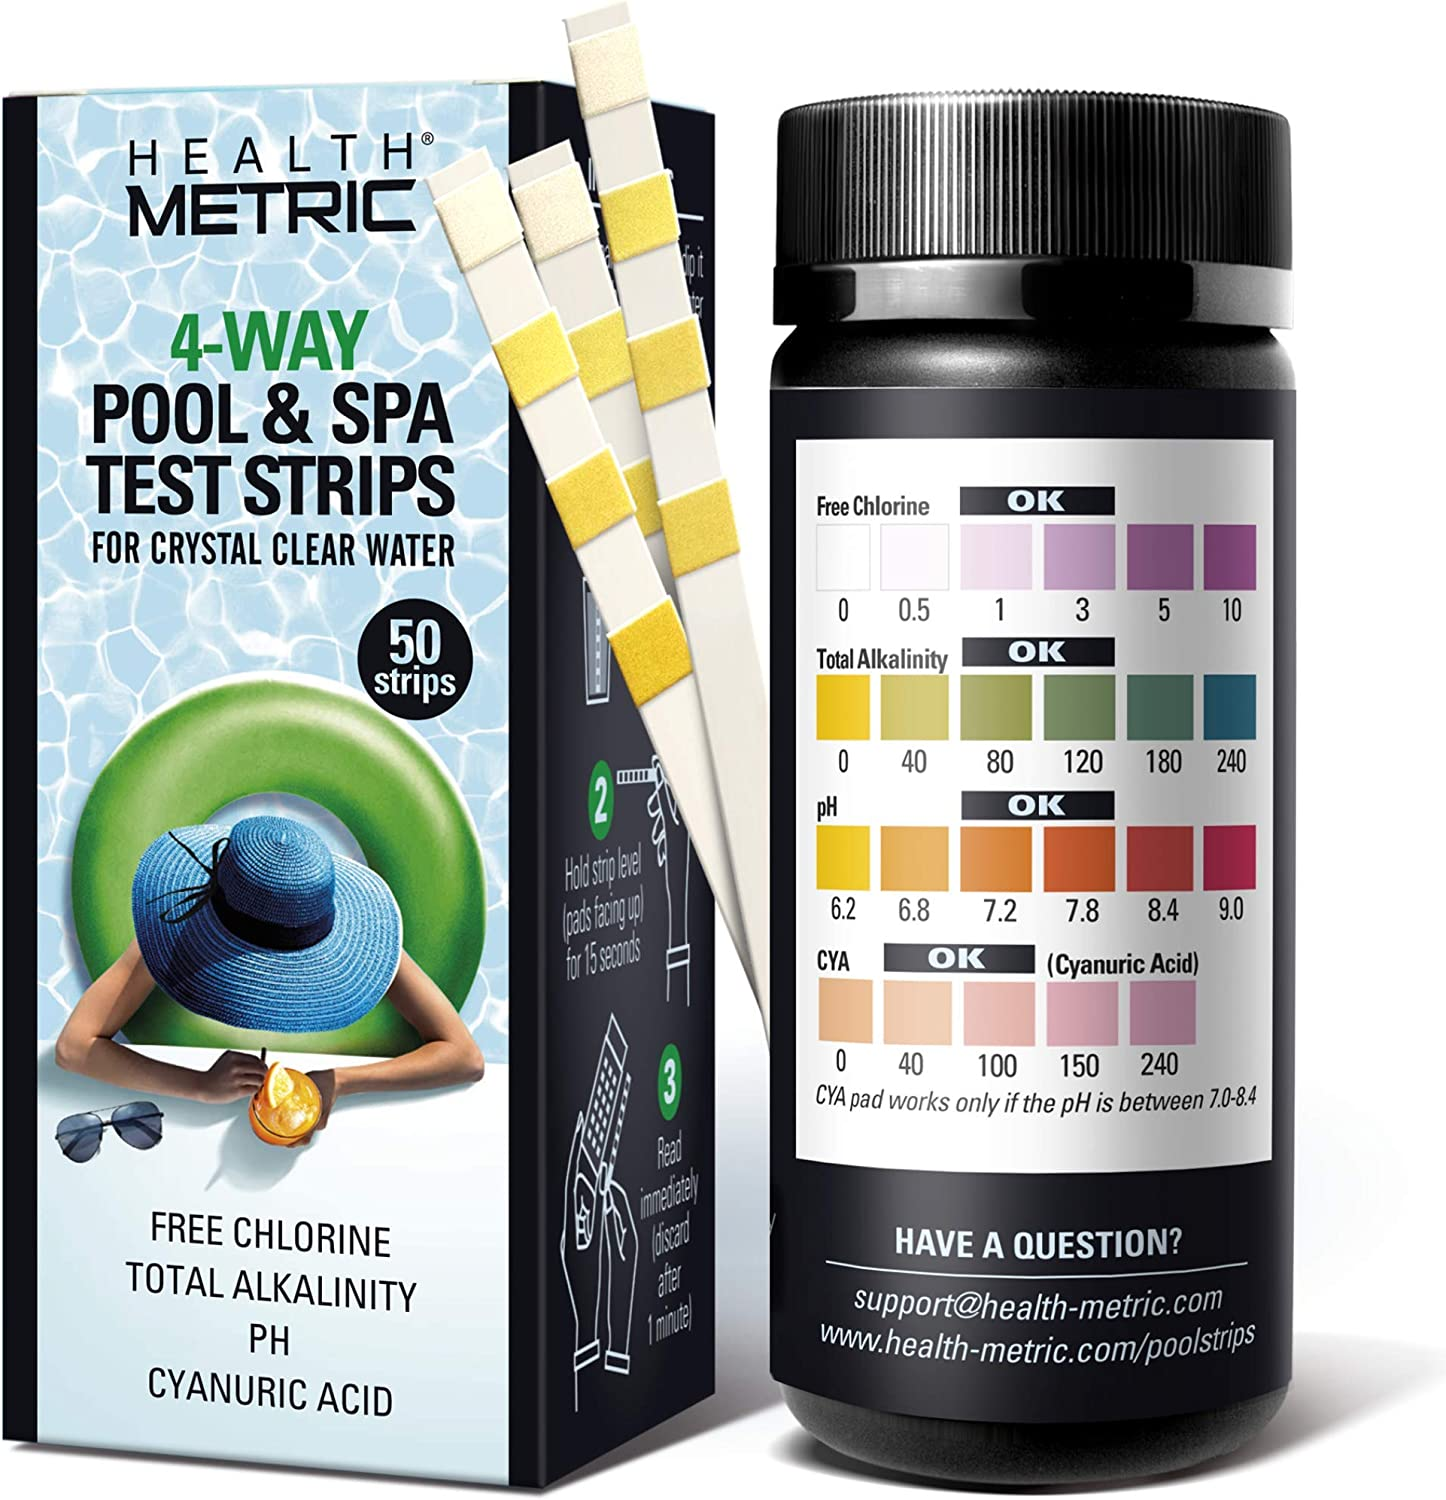 Max 65% OFF Pool and Spa New Shipping Free Test Strips - 4 Swimming Way Kit Strip Testing